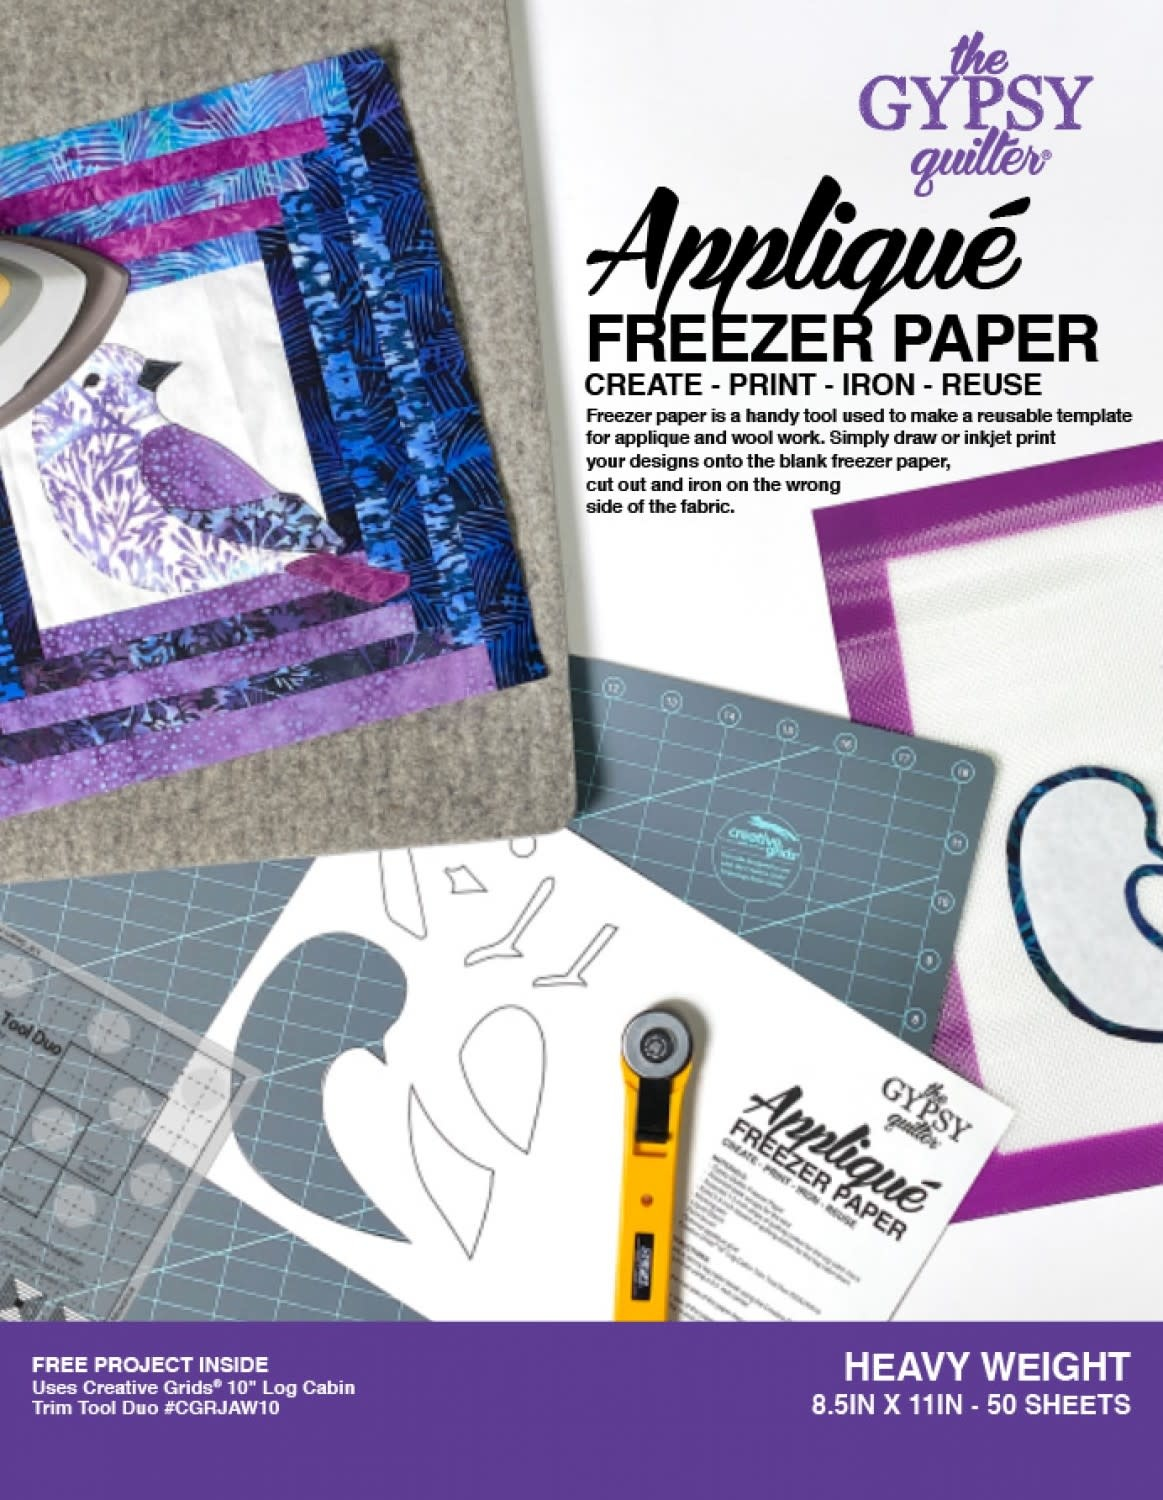 THE GYPSY QUILTER Freezer Paper 8 1/2in x 11in Heavy Weight 50ct